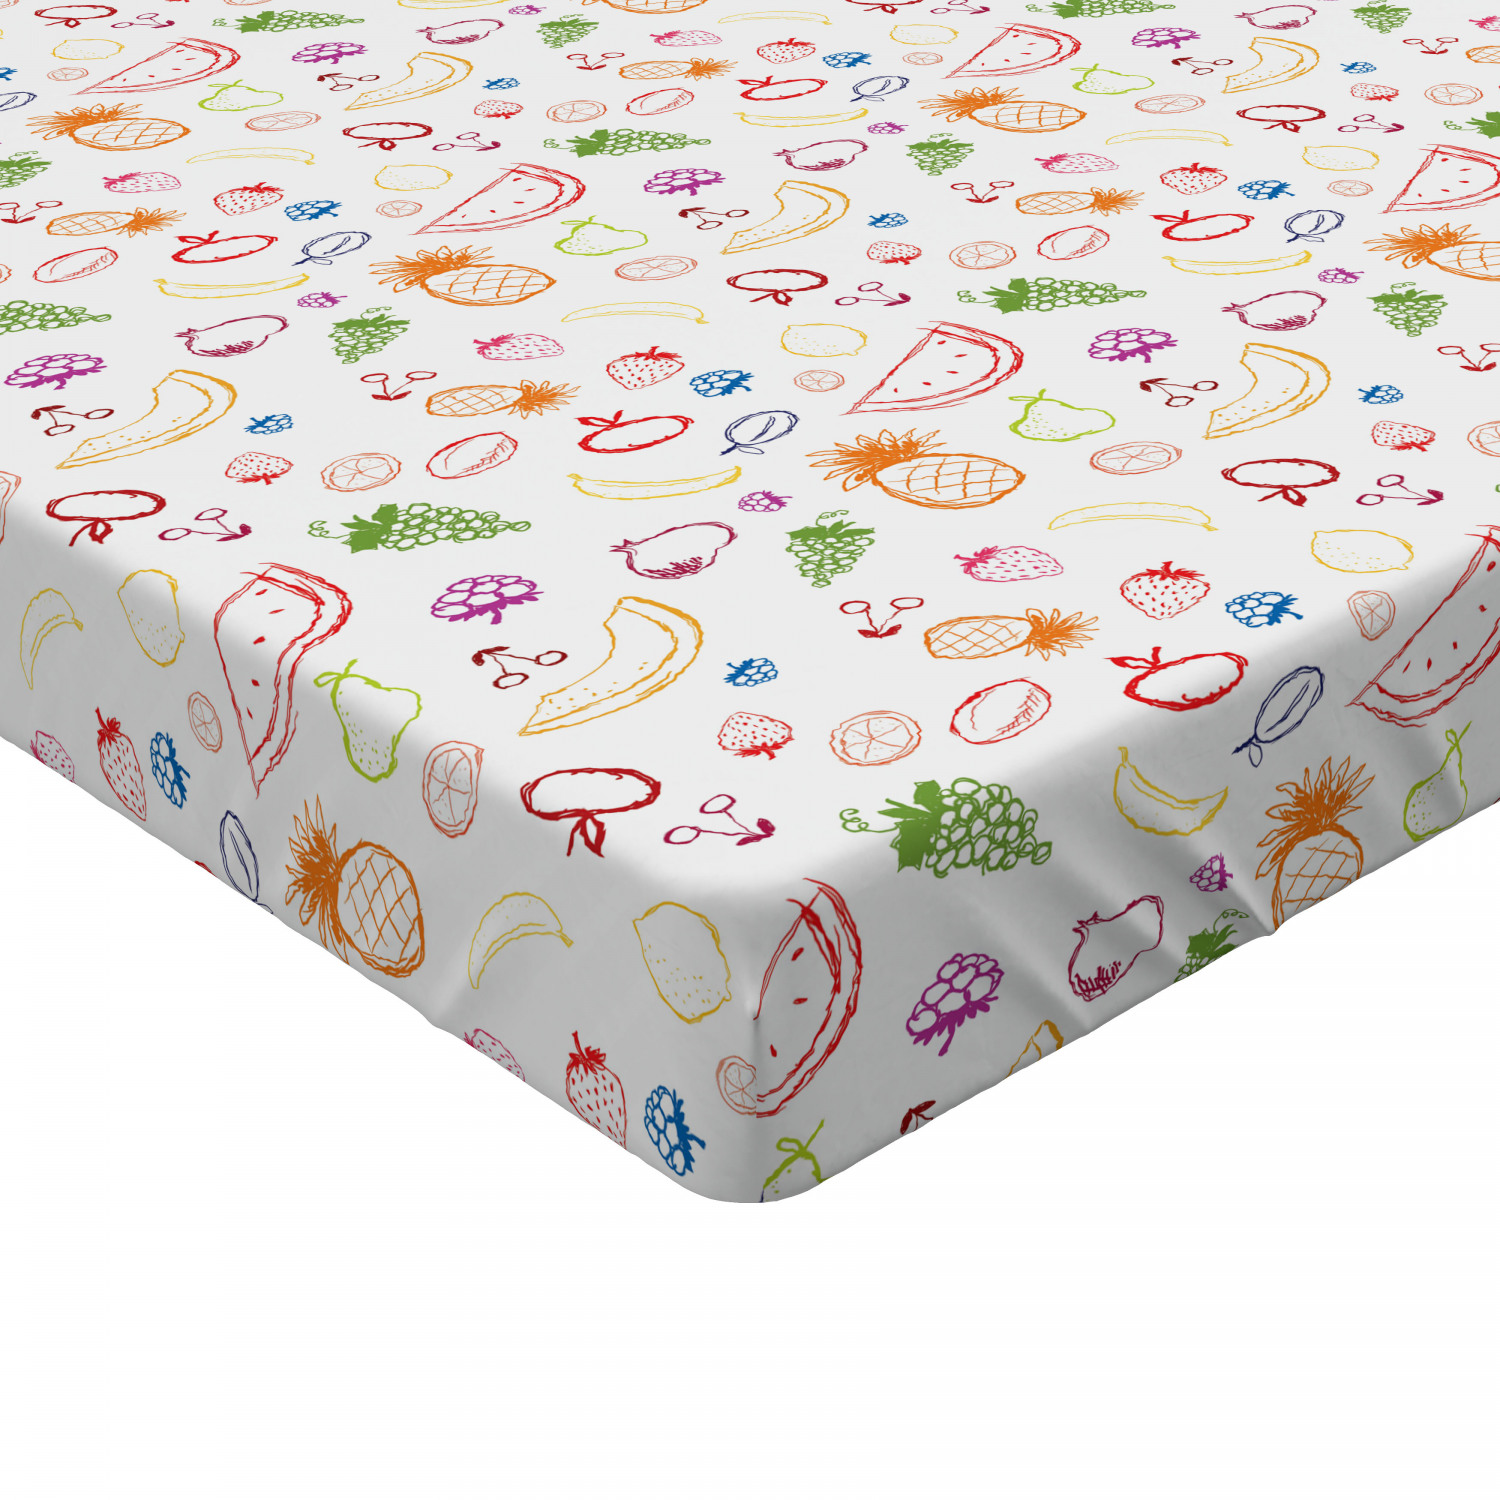 Queen Bee Fitted Sheet Cover with All-Round Elastic Pocket in 4 Sizes